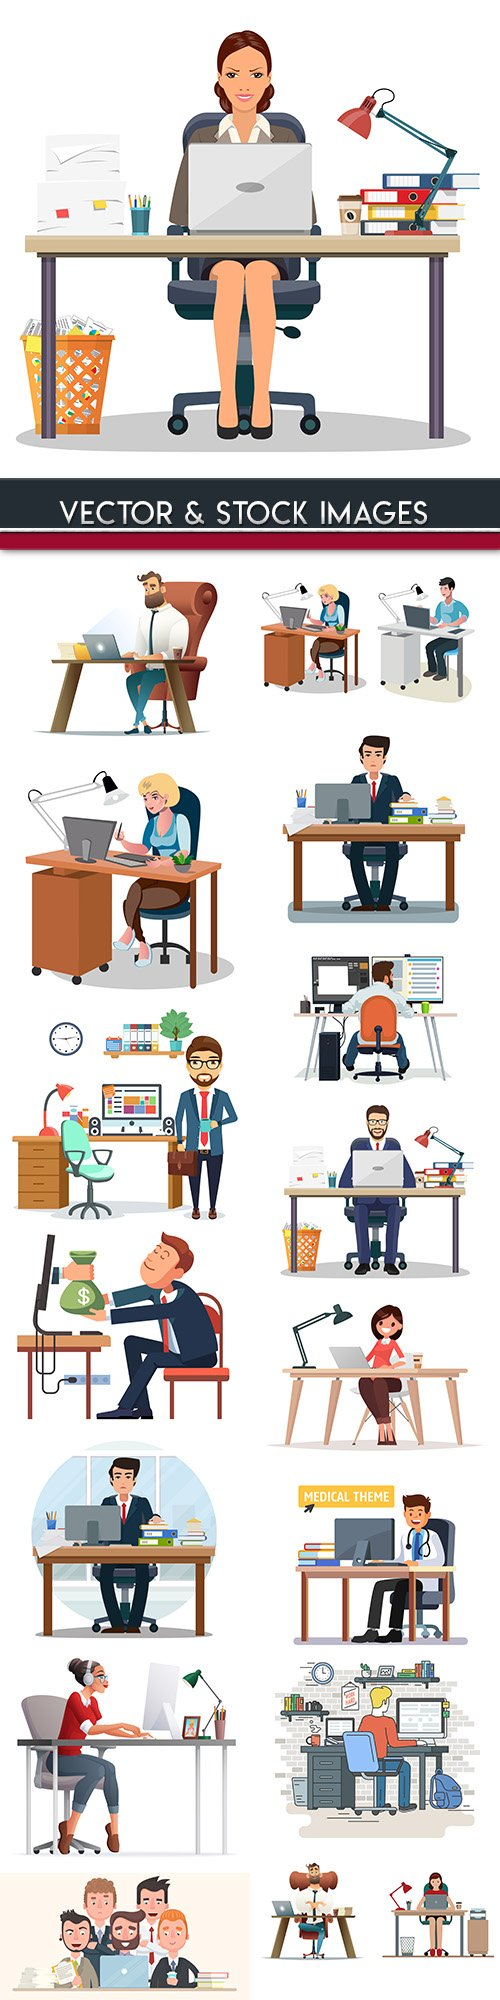 Business office people behind their workplace illustration